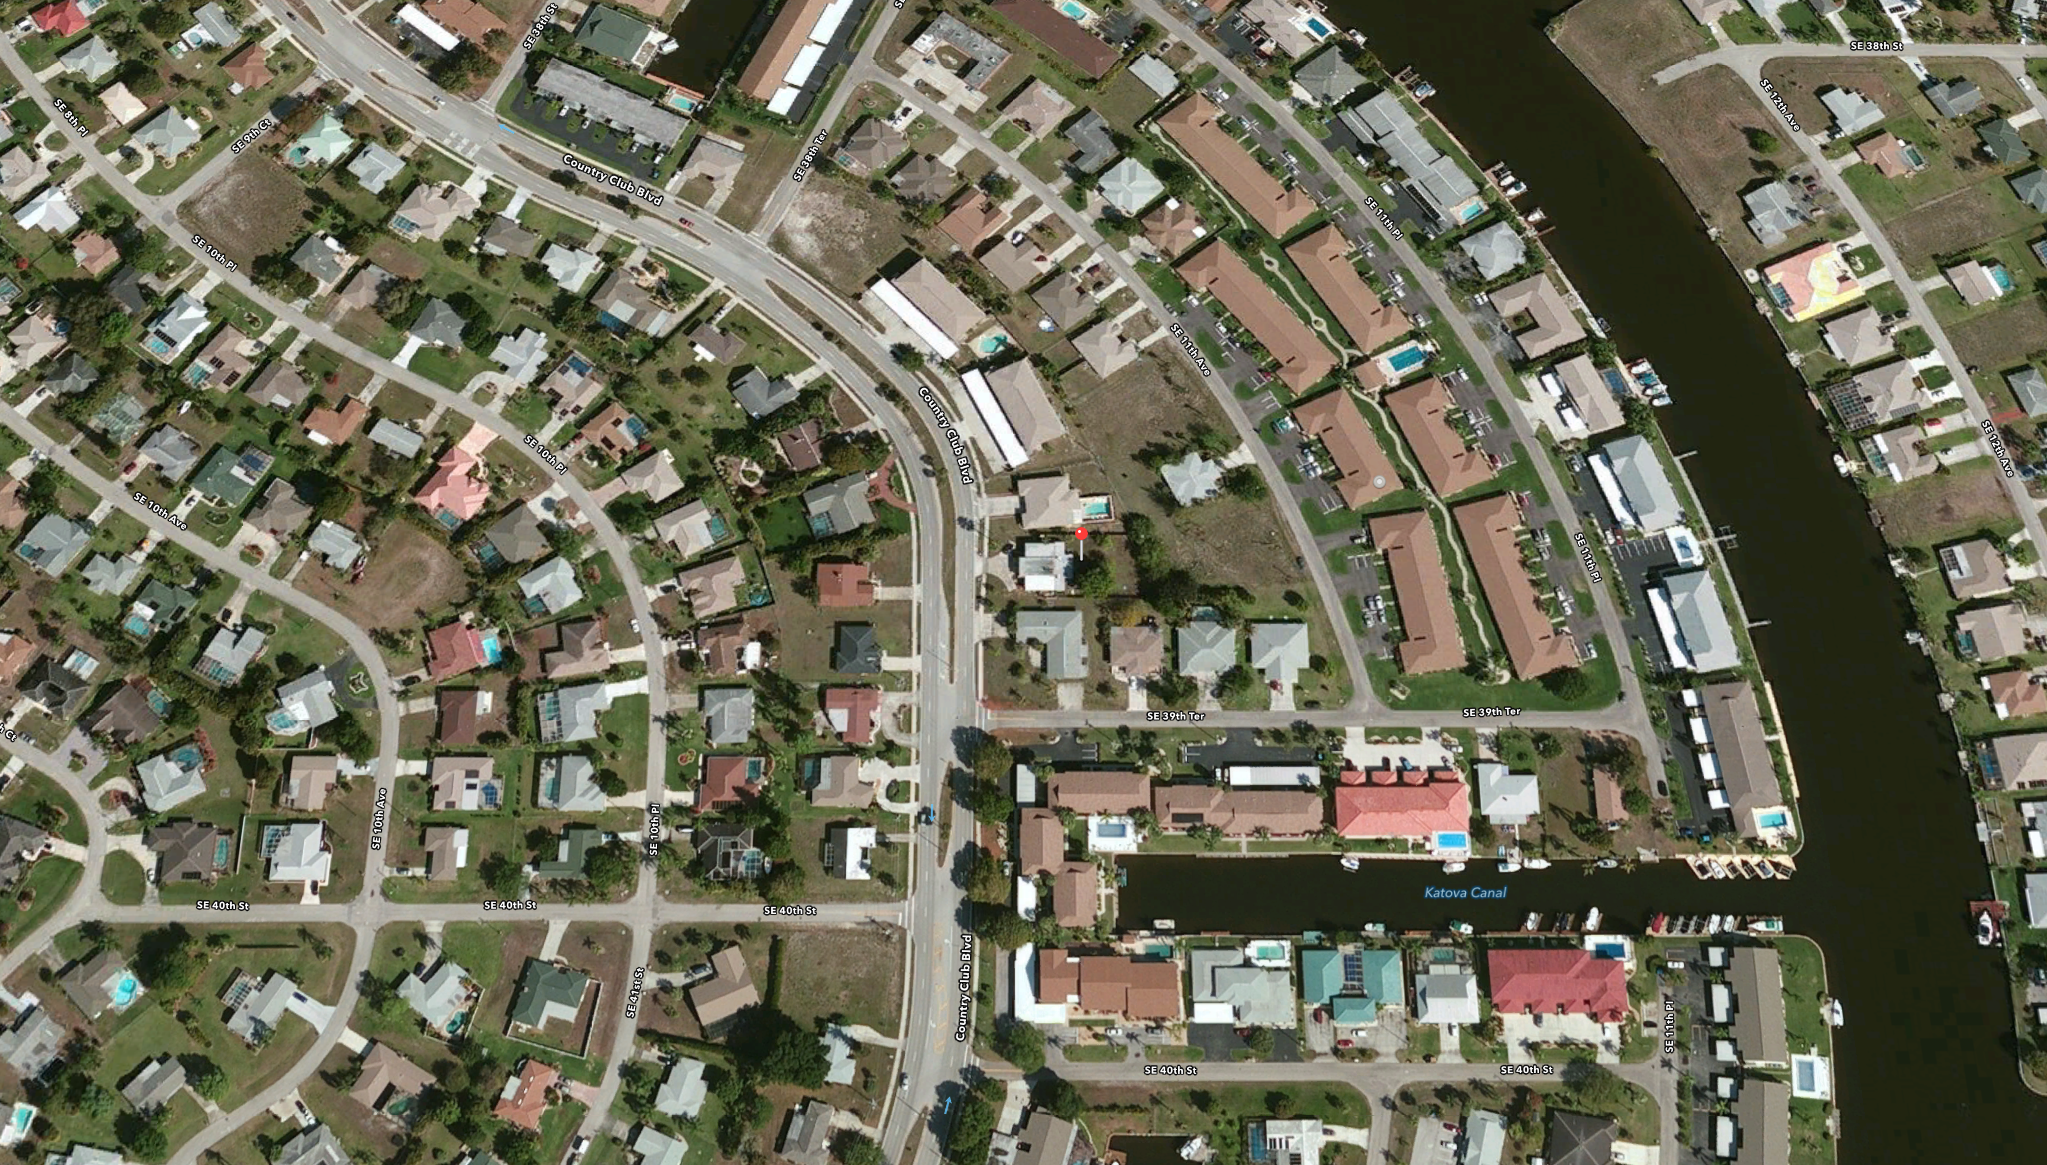 PHOTO: Aerial view of the approximate location of the fatality crash that occurred in the 3900 Block of County Club Boulevard. (Photo Courtesy of Apple, Inc.)